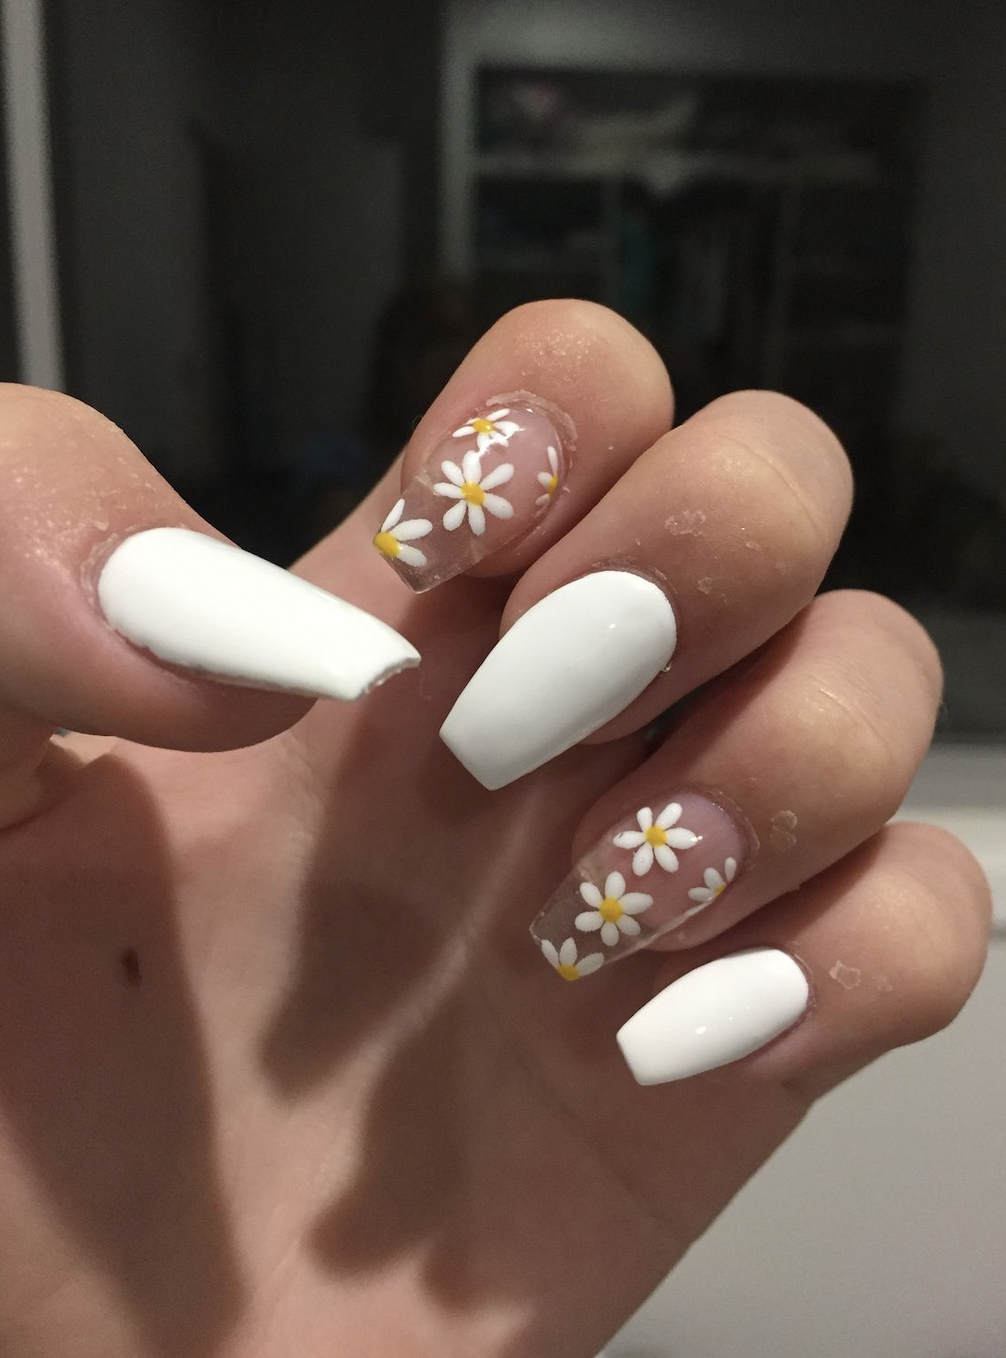 White Nail Colors & Inspiration For All 4 Seasons